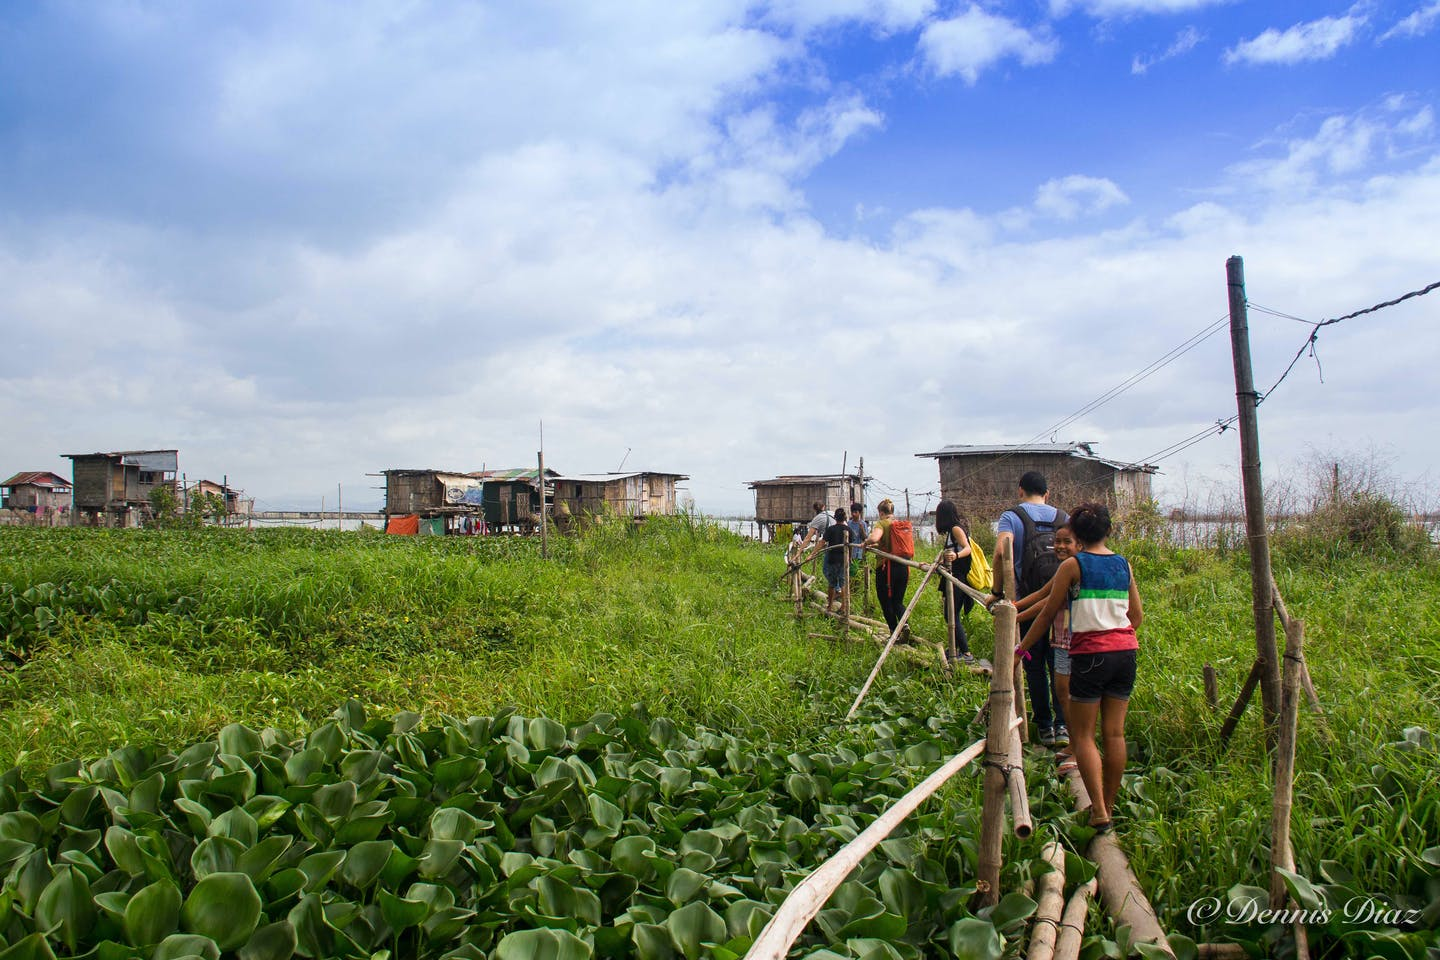 Filipinos in typhoon and flood-prone communities